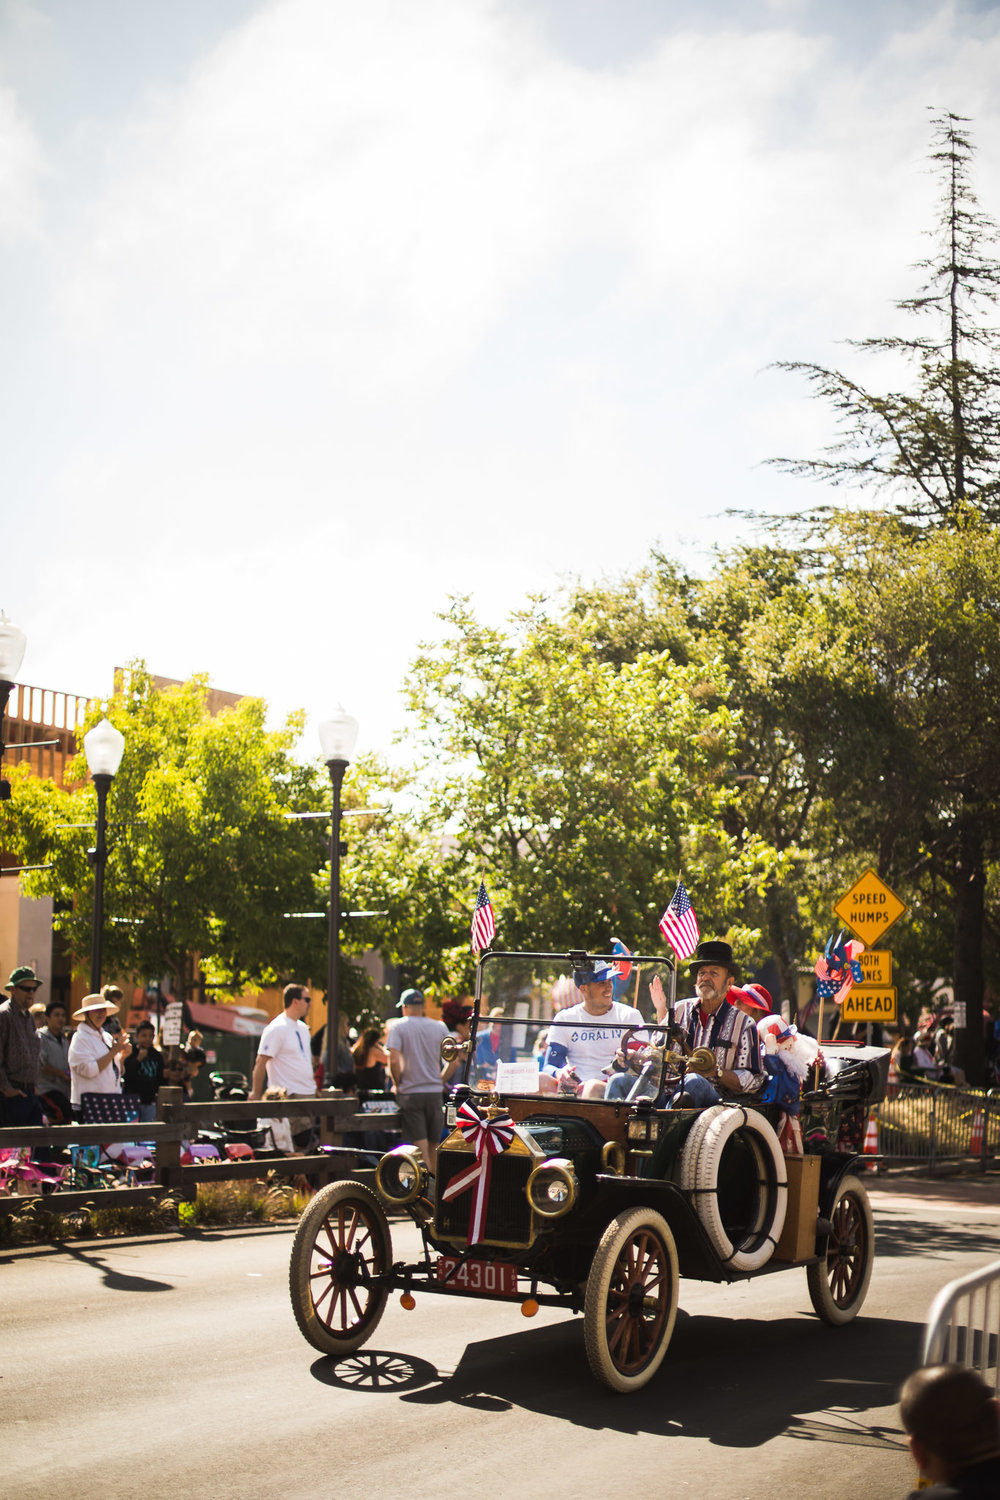 Archer_Inspired_Photography_Morgan_Hill_California_4th_of_july_parade-22.jpg